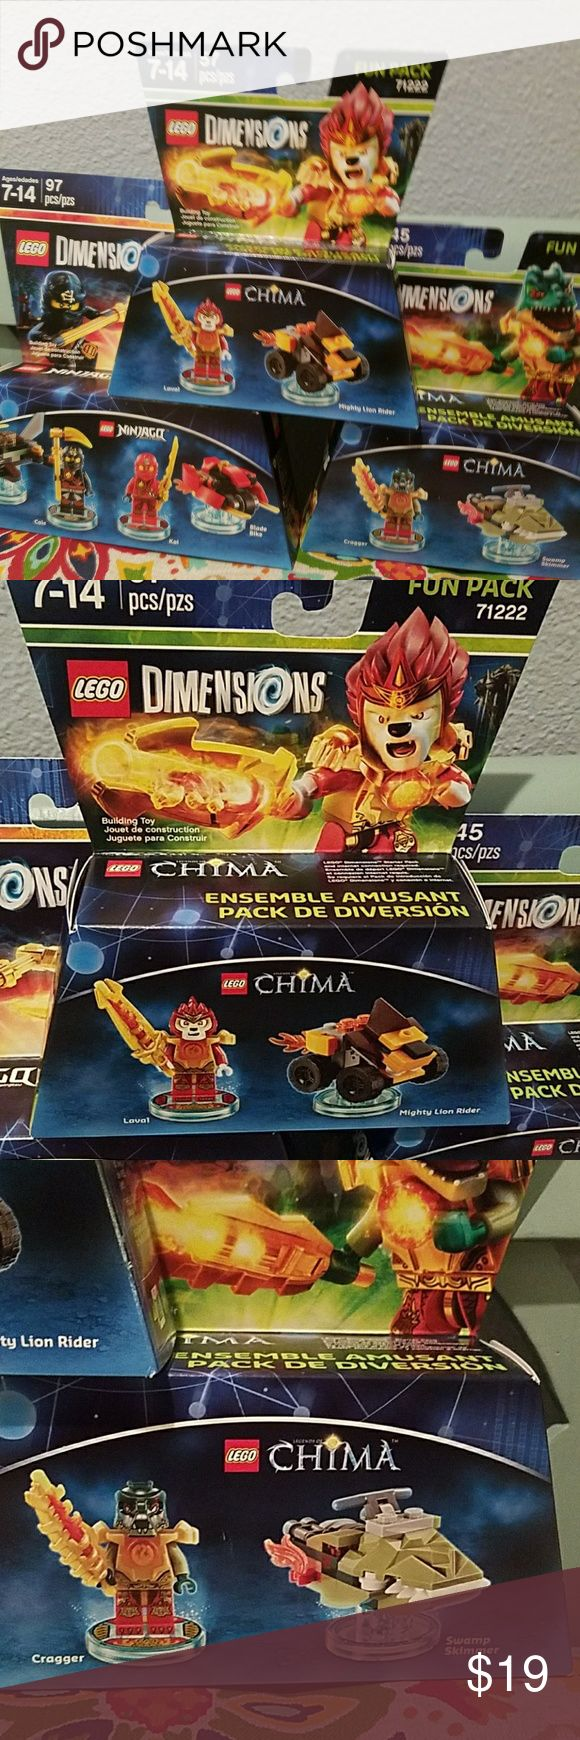 Lego Chima Lego China great condition brand new Lego  Other